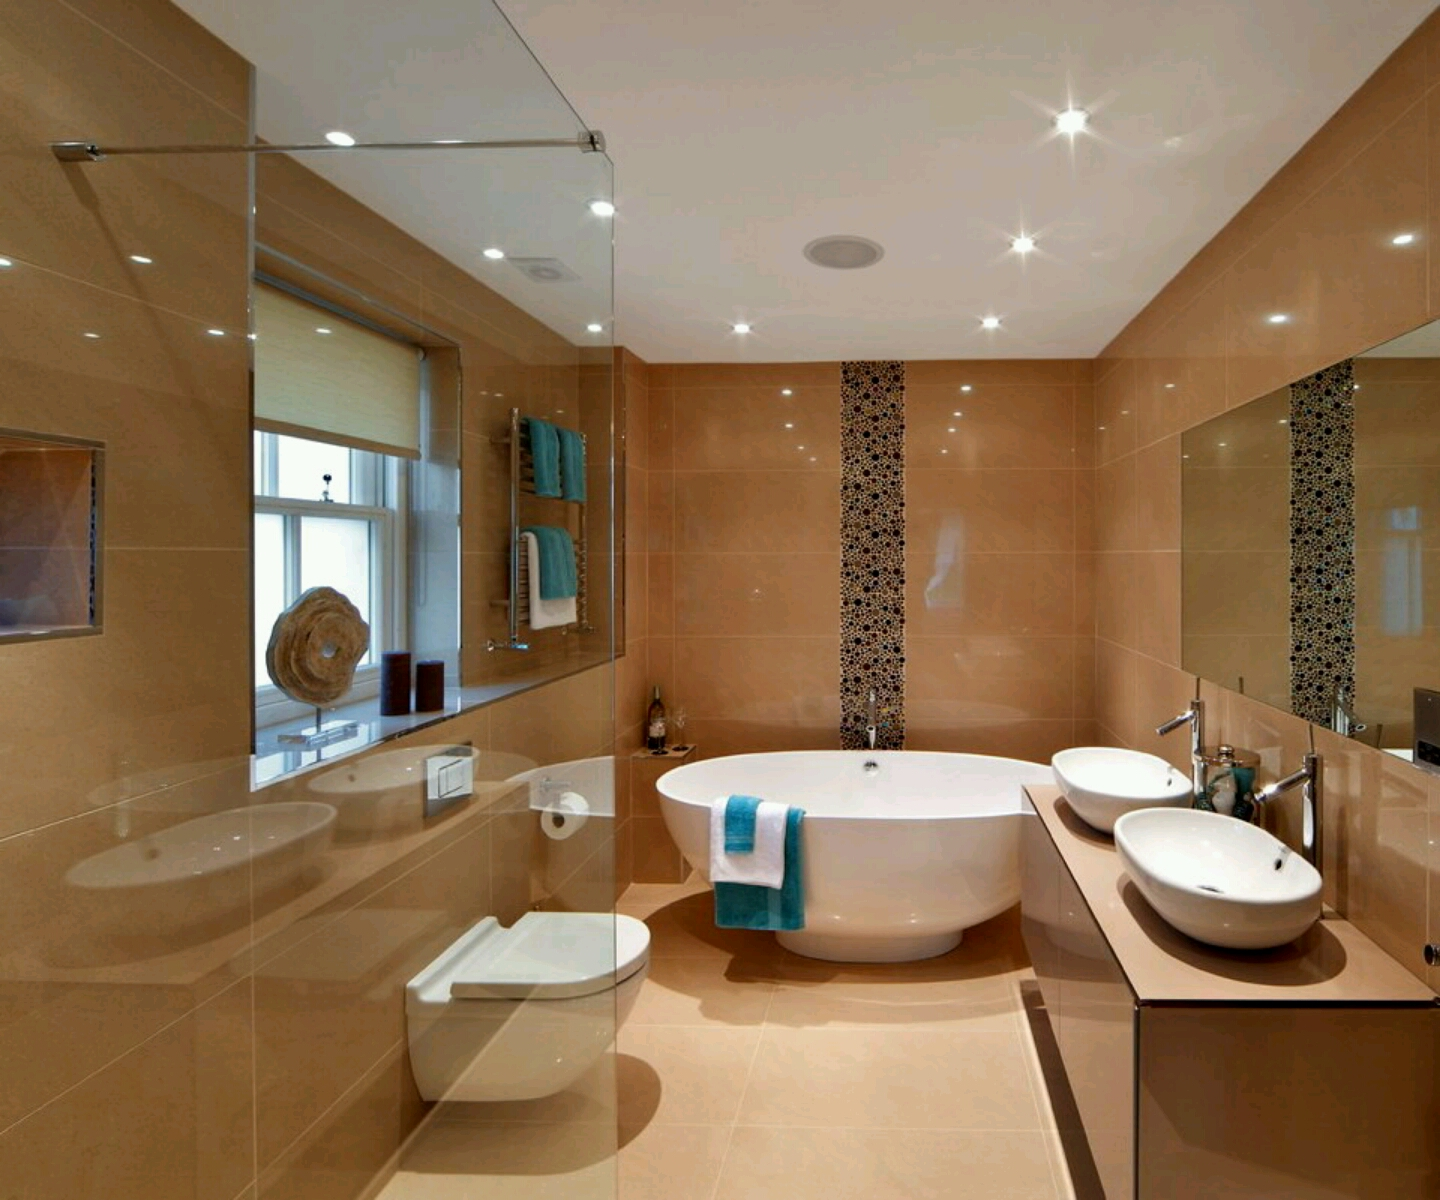 New home designs latest luxury modern bathrooms designs for Bathroom designs contemporary